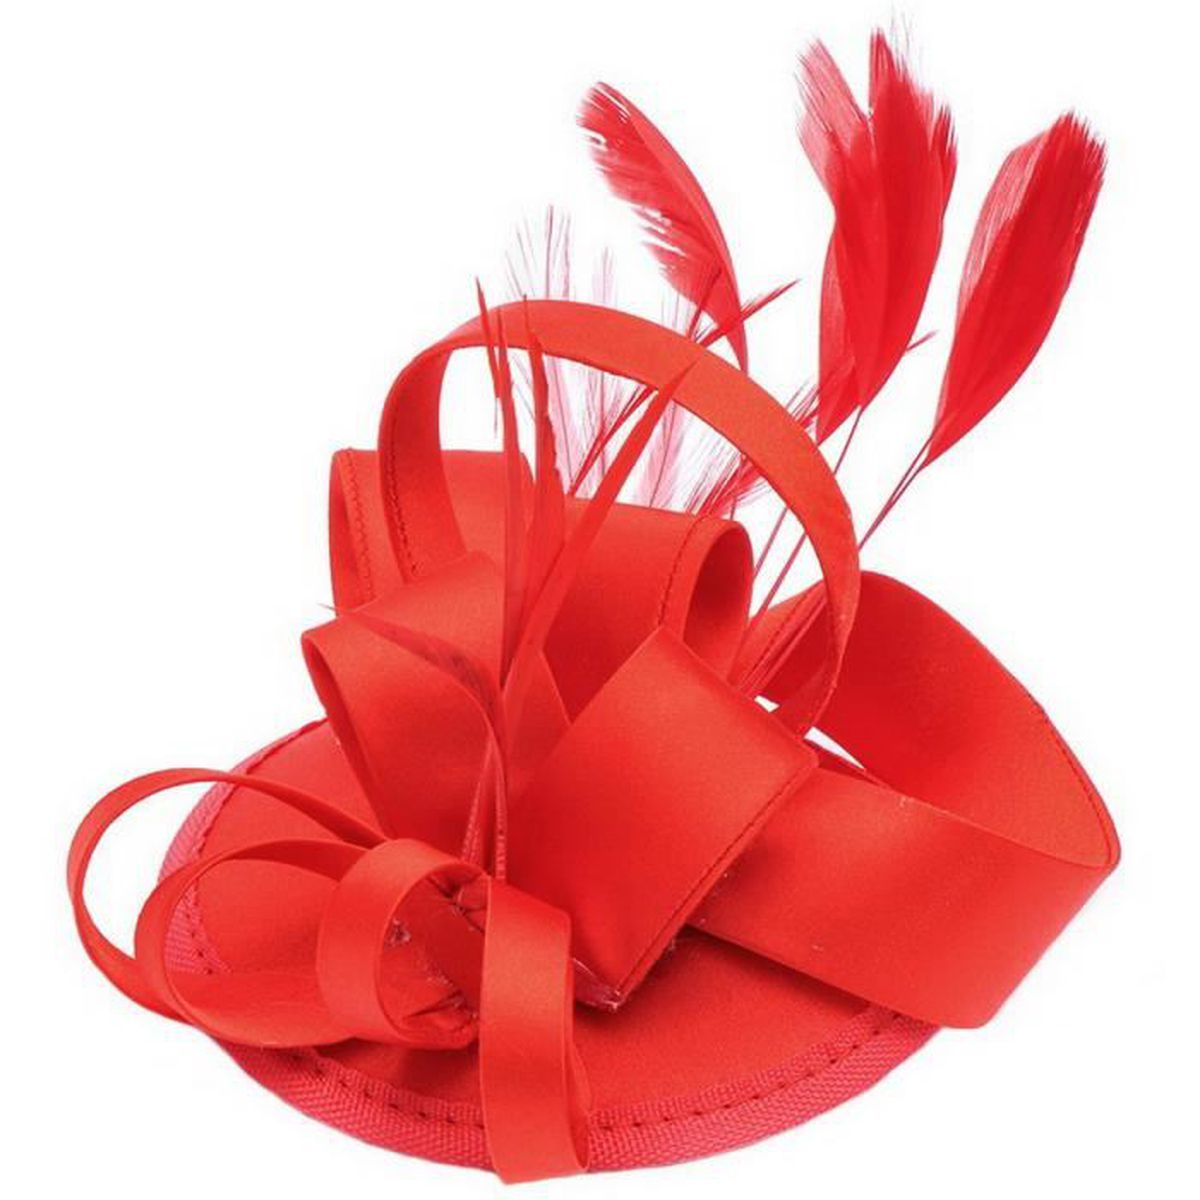 Bandeaus jpg Pour Plumes Gresorth Chapeau F Fascinator 5qY5Hw0